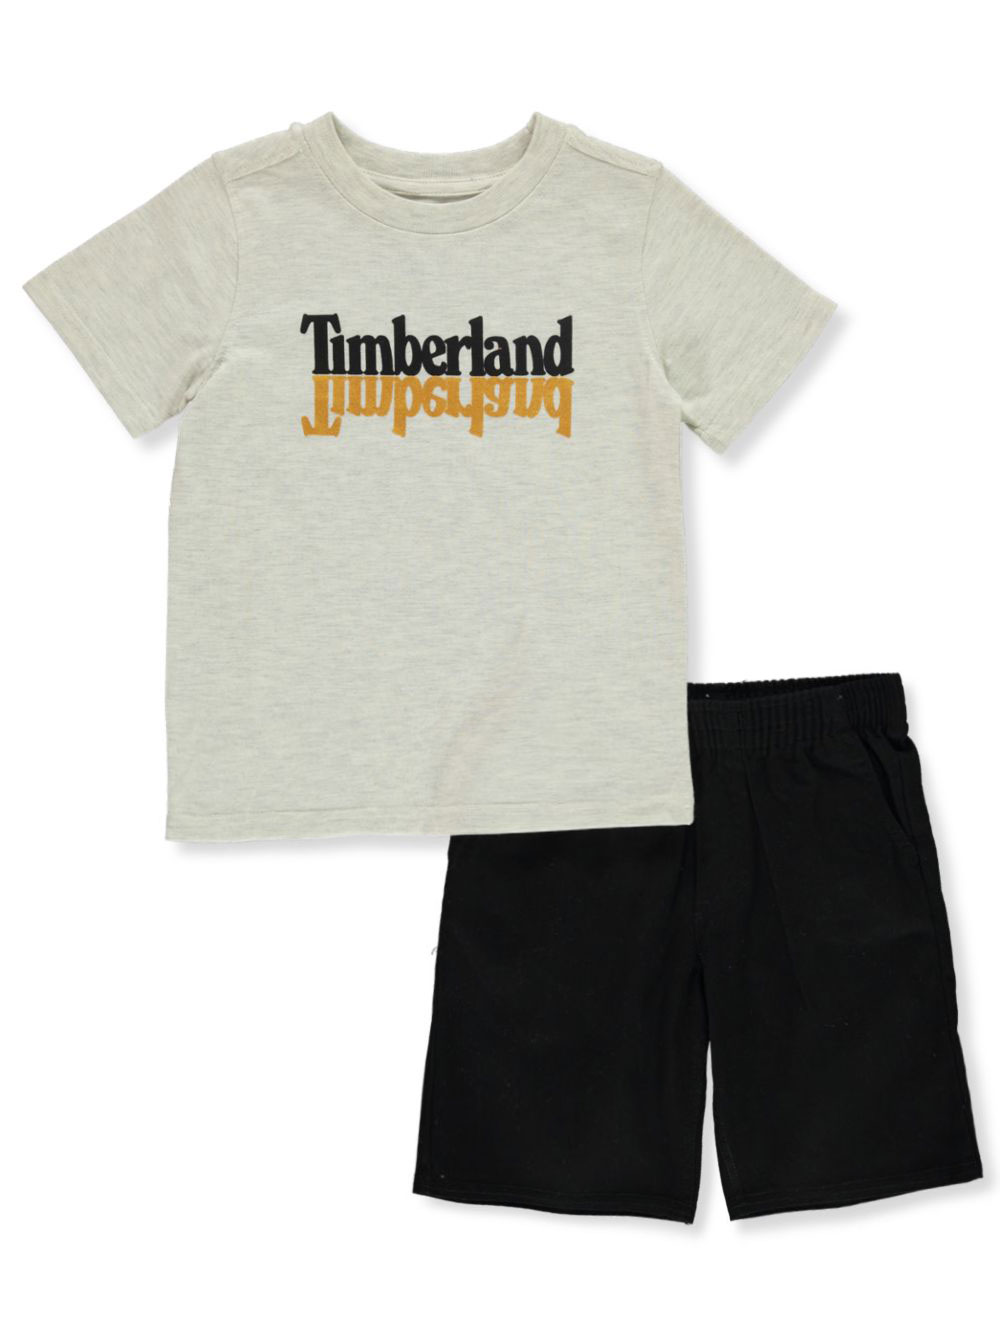 Timberland Short Set